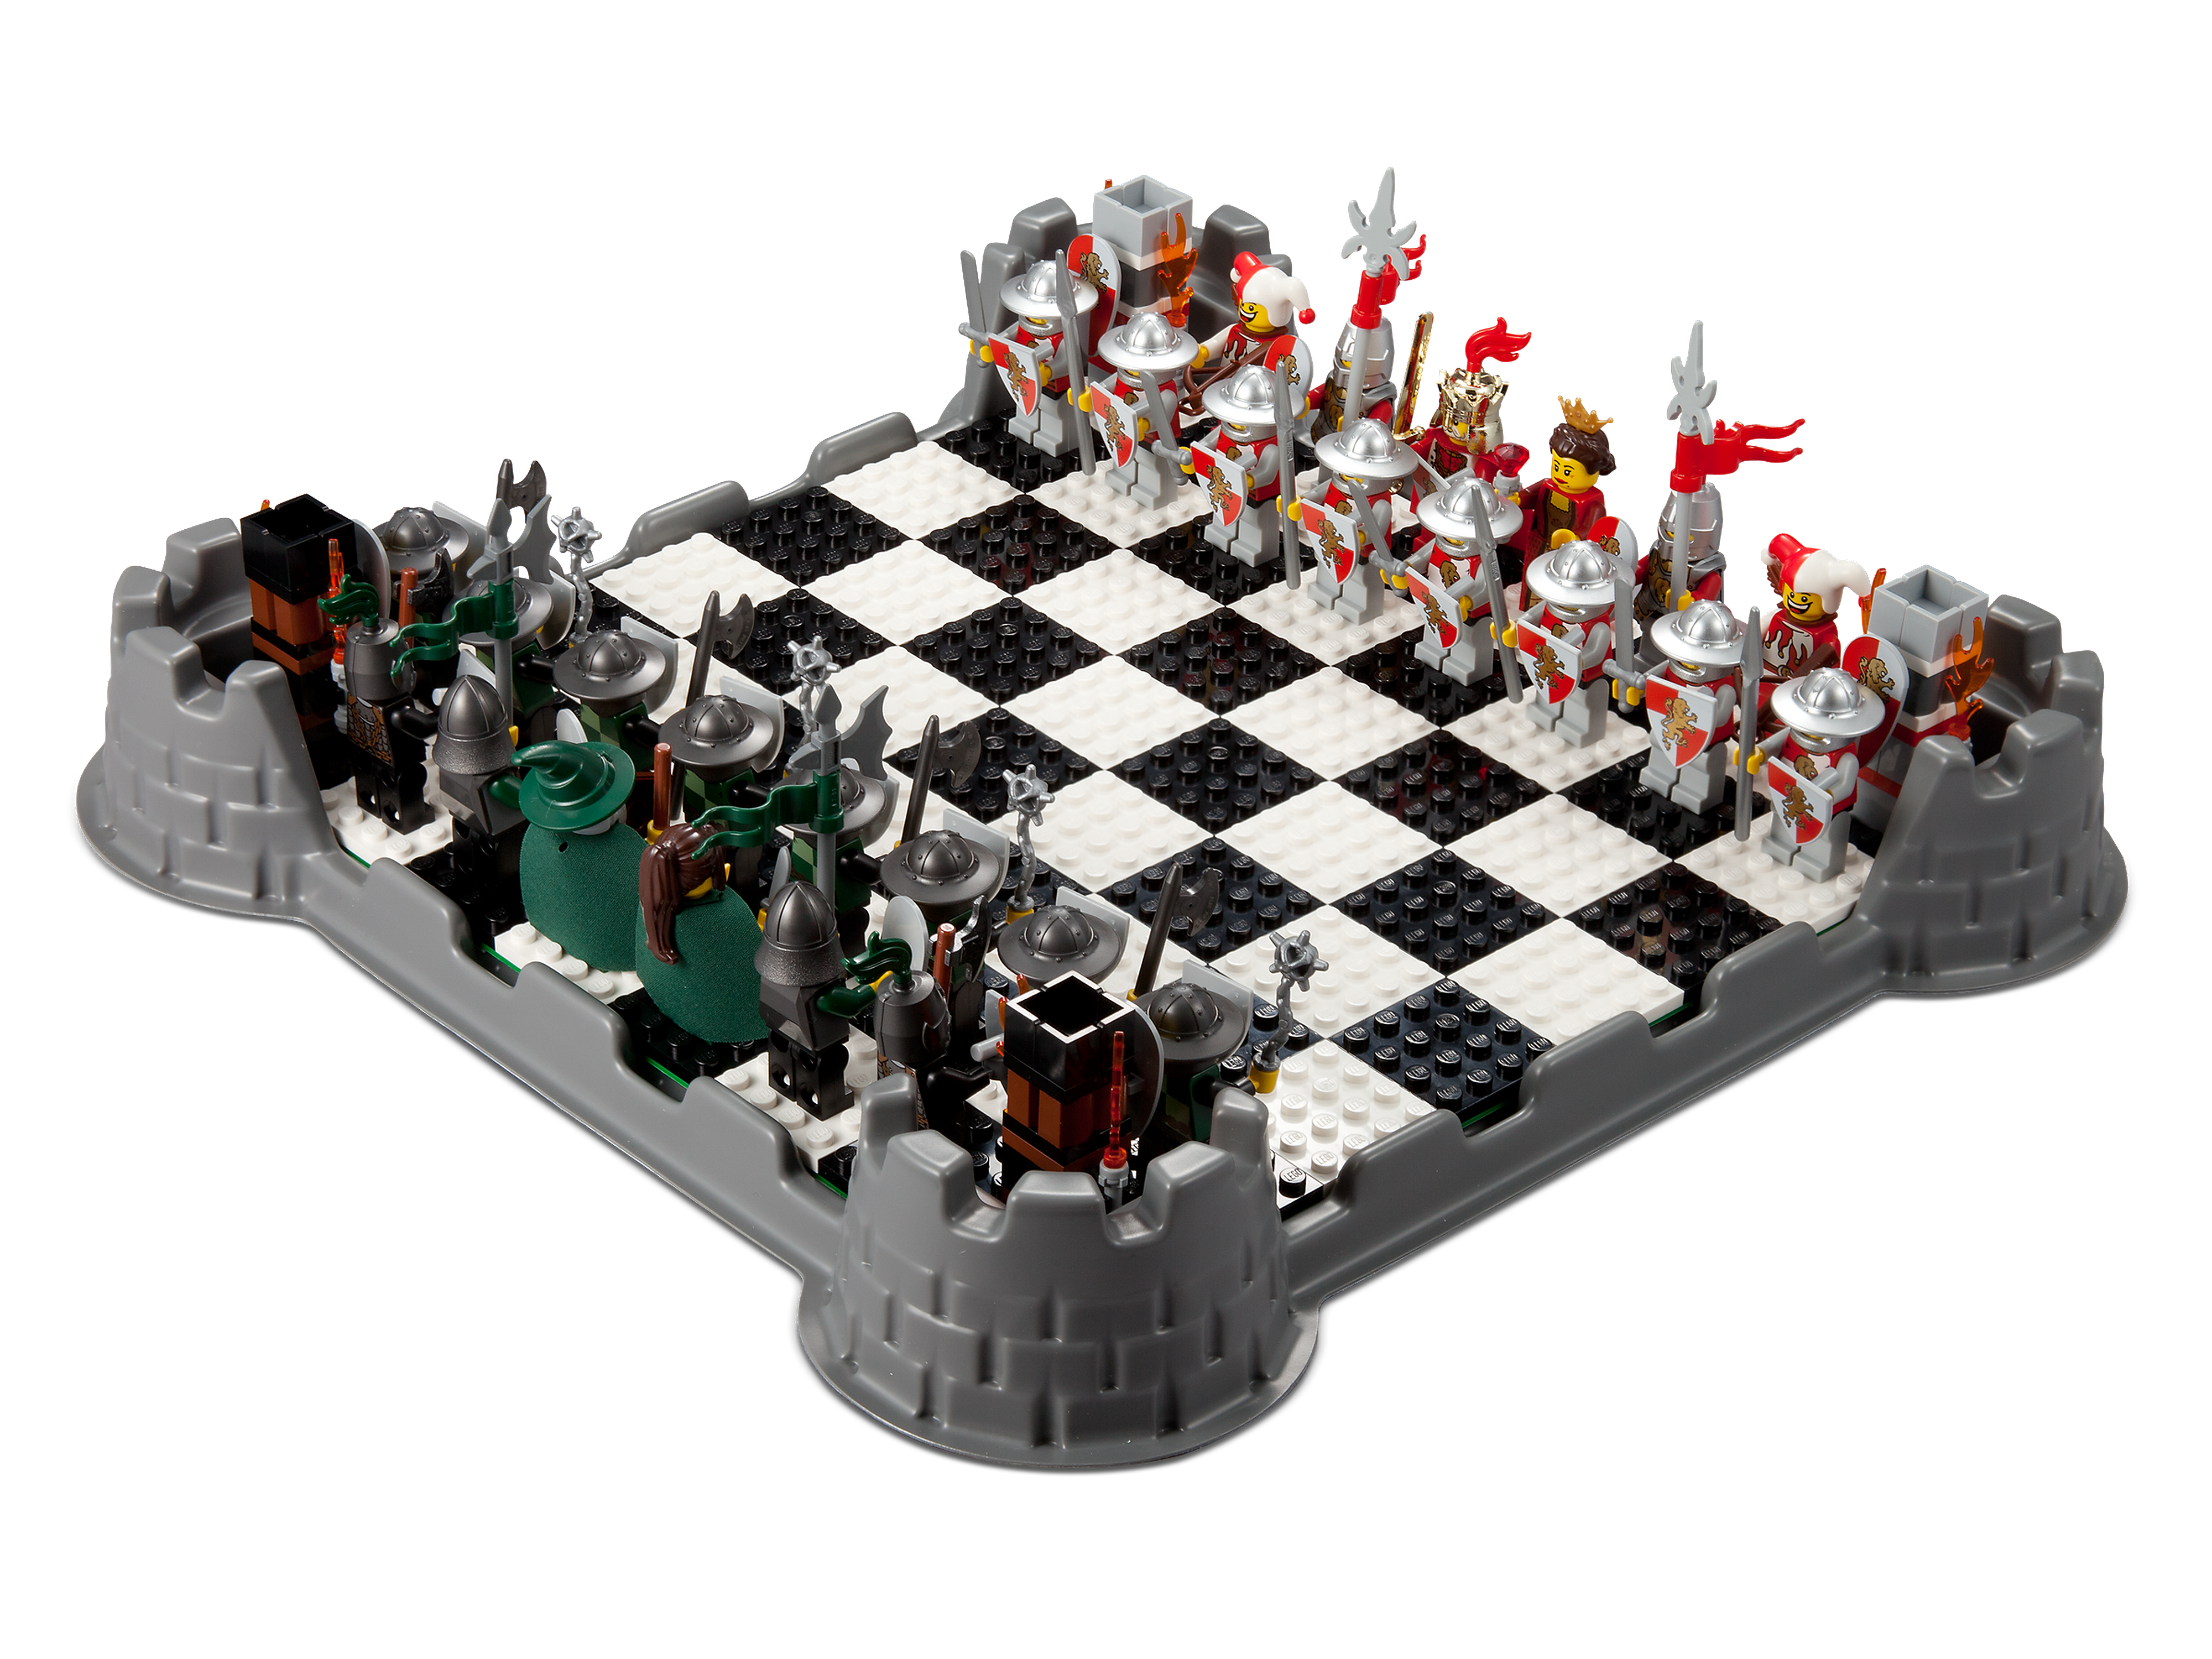 Image result for lego kingdoms chess